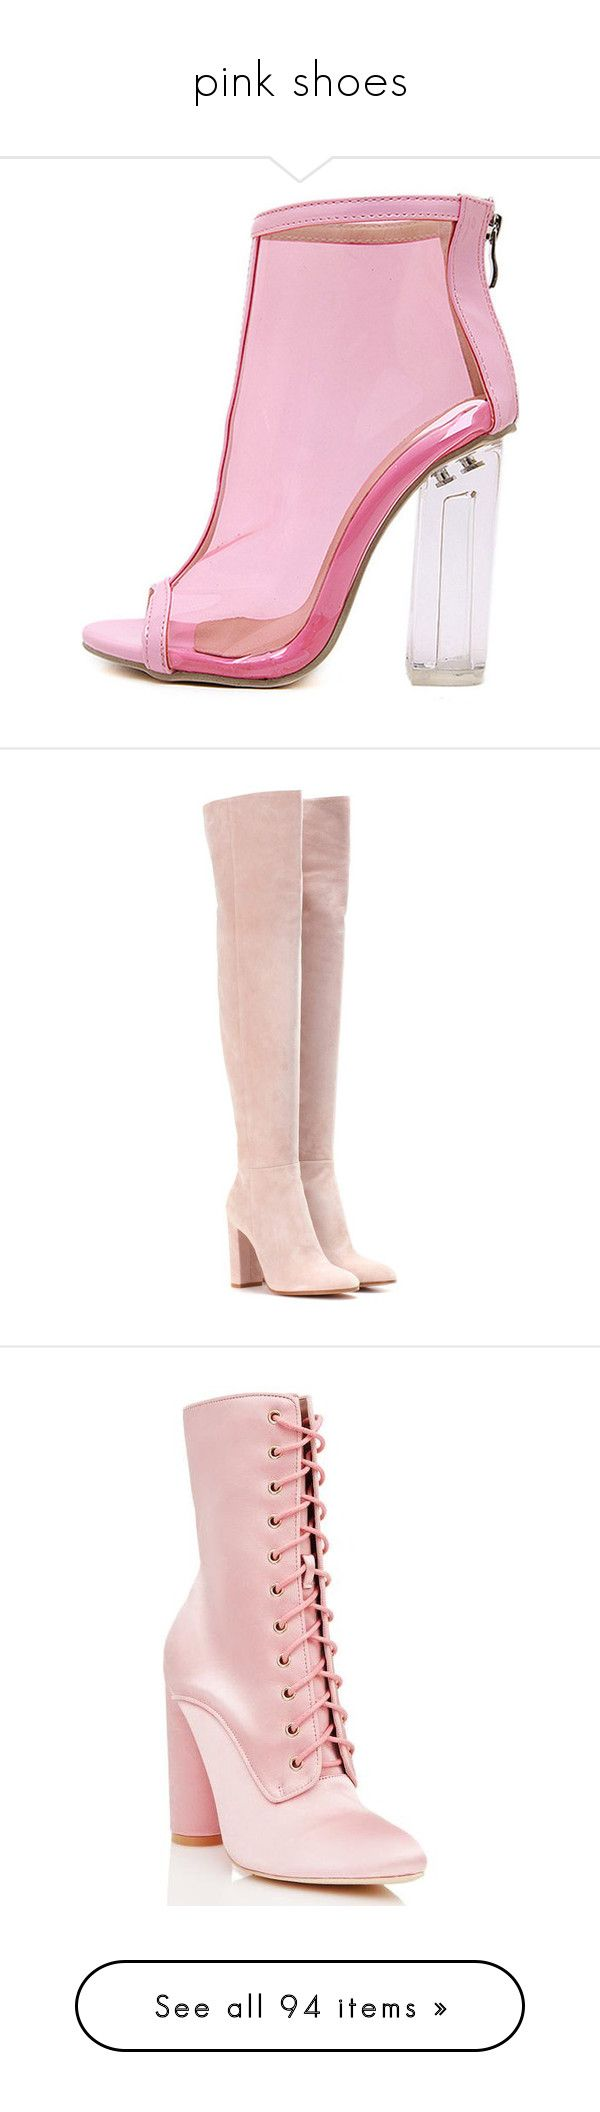 """pink shoes"" by sapphirejones ❤ liked on Polyvore featuring shoes, boots, ankle booties, heels, pink, ankle boots, high heel bootie, chunky heel boots, thick heel bootie and high heel ankle booties"